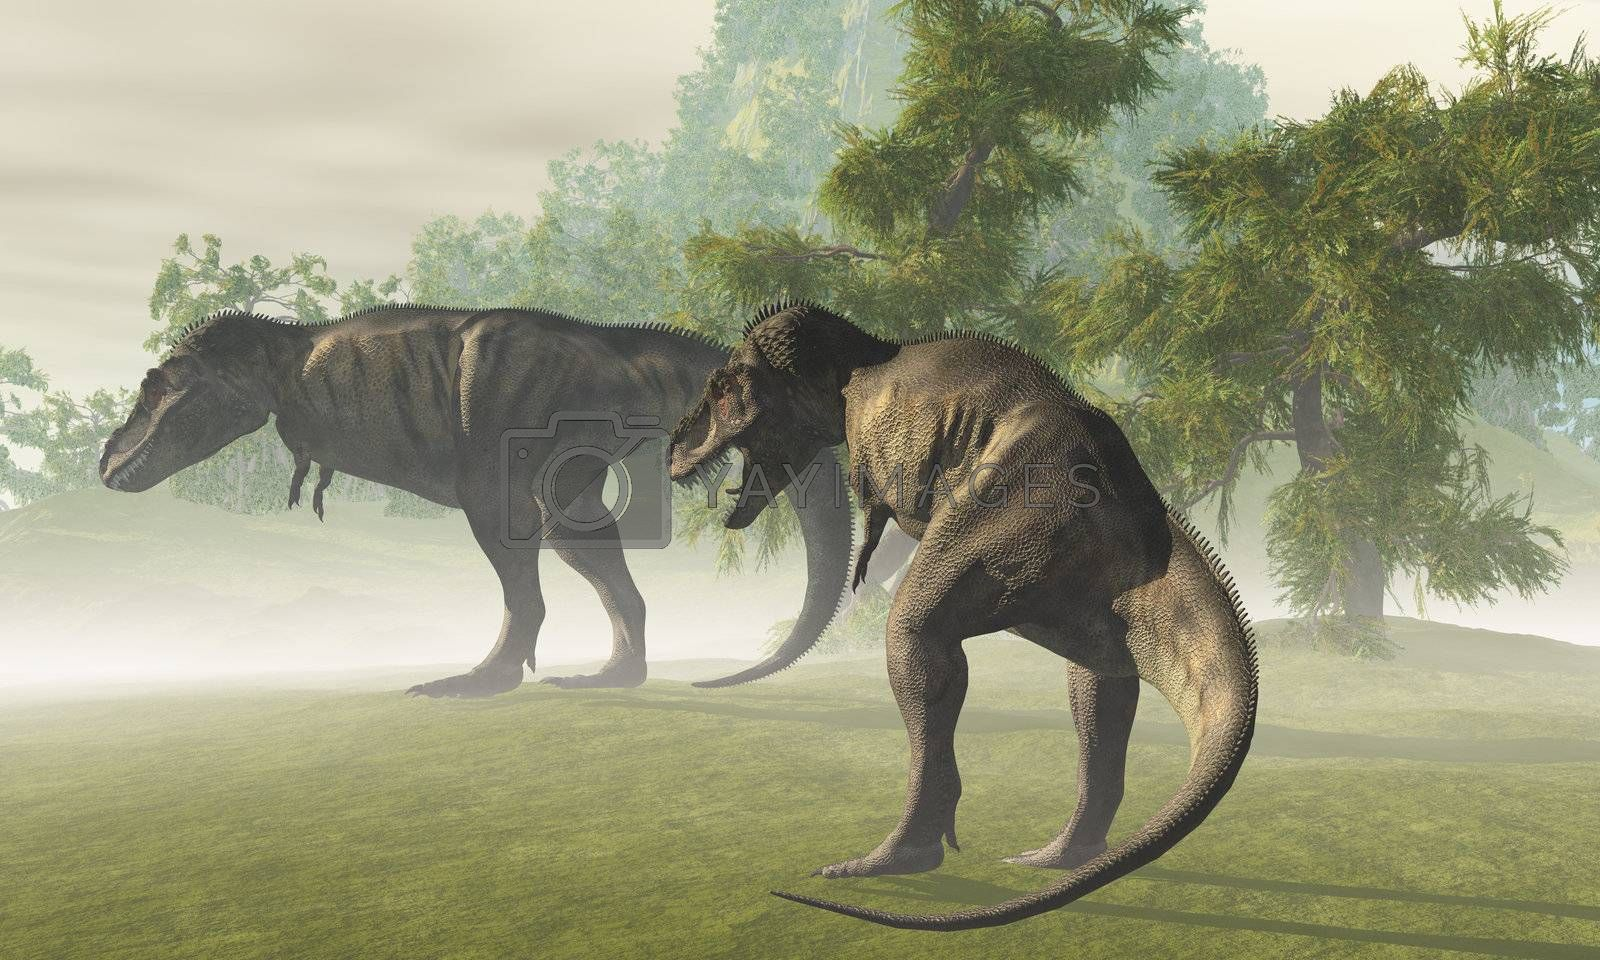 Two Tyrannosaurus Rex dinosaurs rest in the early morning light before the days hunt.